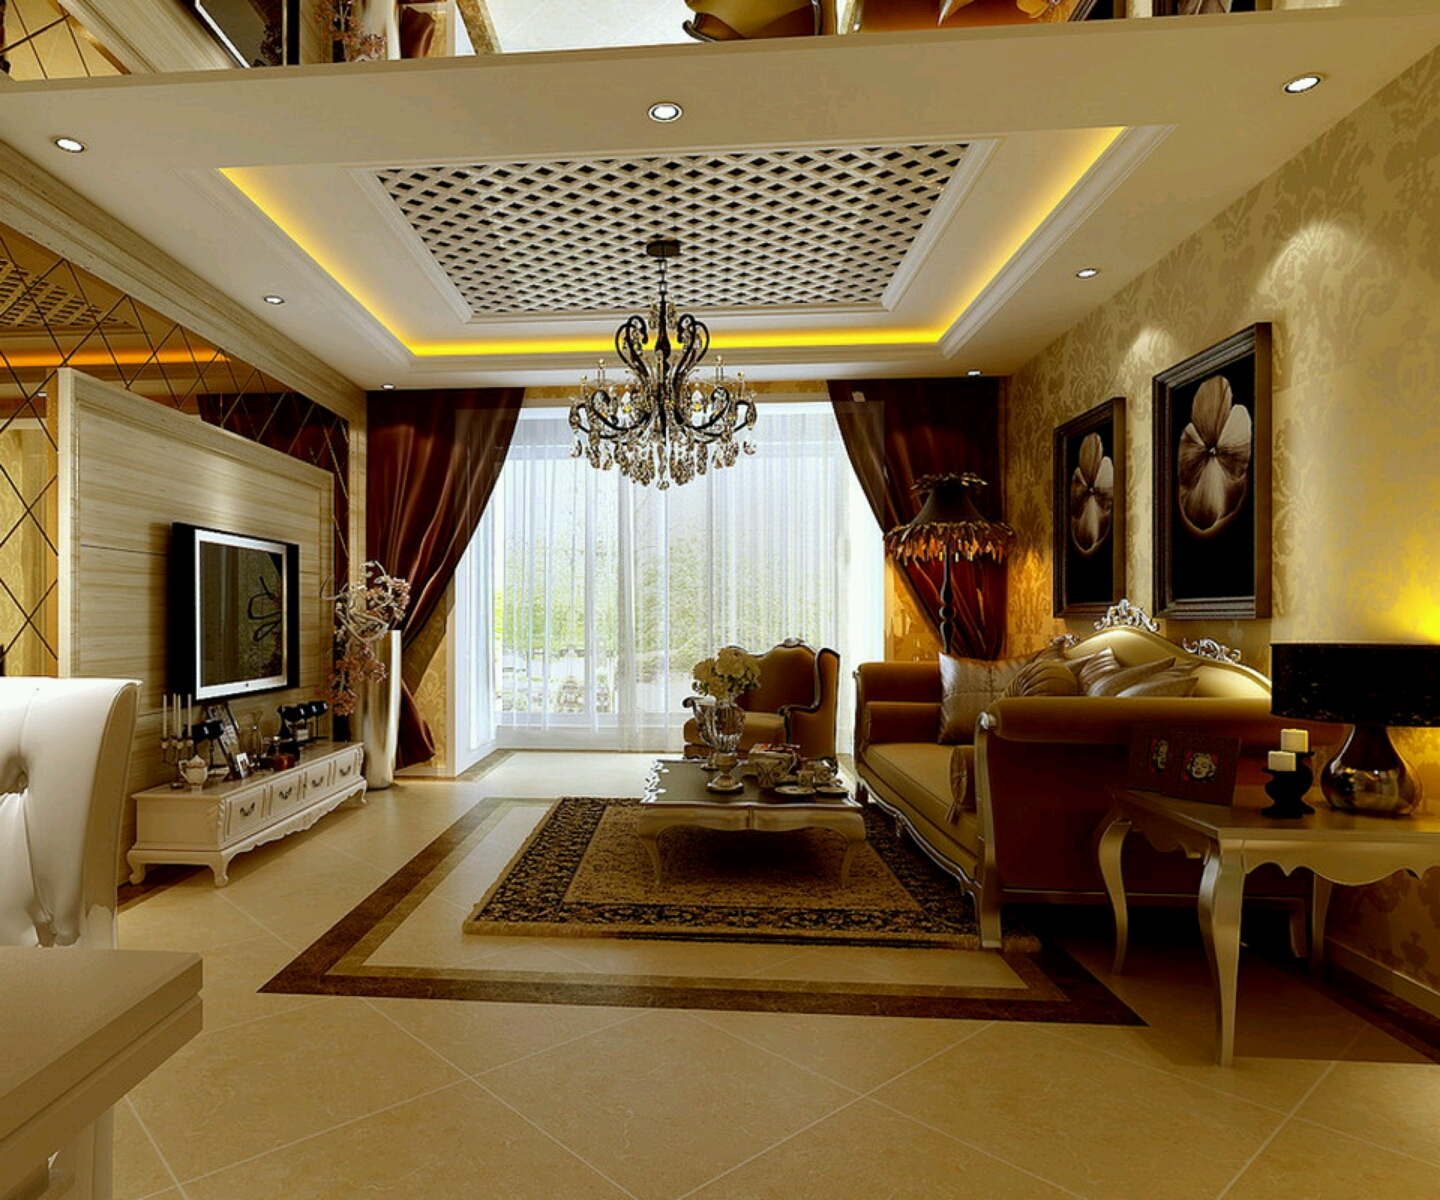 Luxury homes interior decoration living room designs ideas for Luxury interior design